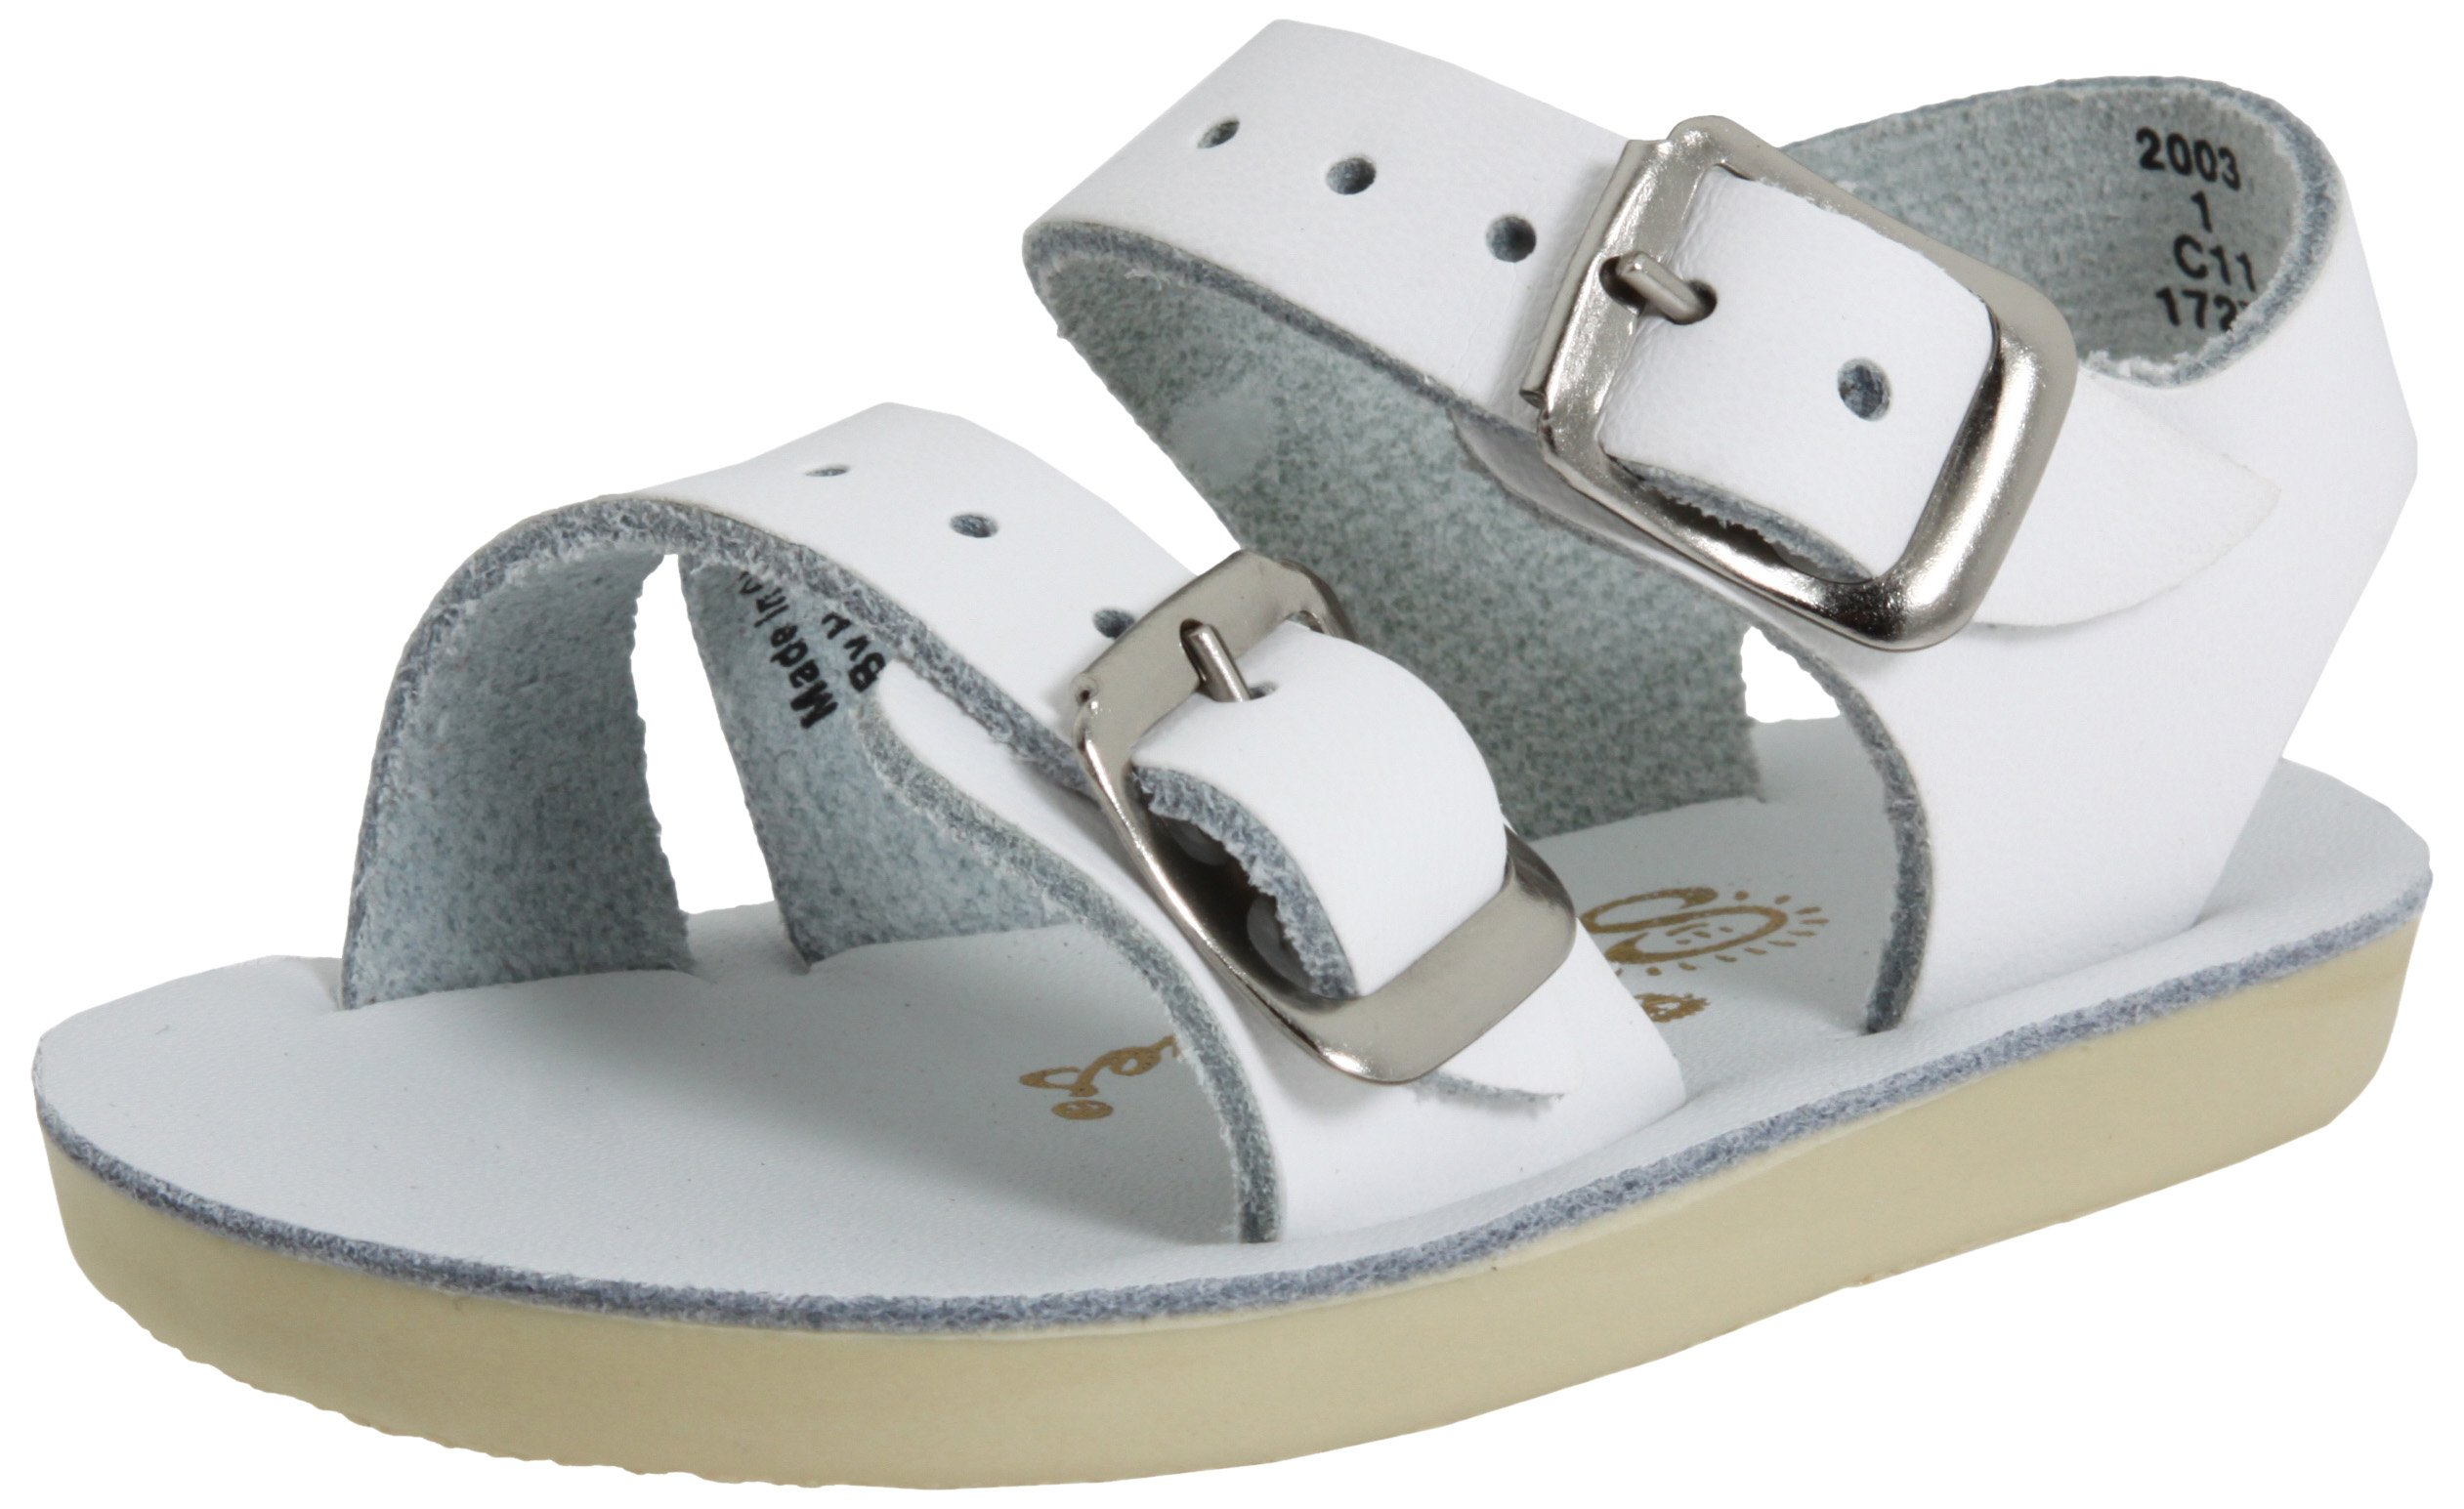 6bcfb5036837 Galleon - Salt Water Sandals By Hoy Shoe Sea Wees